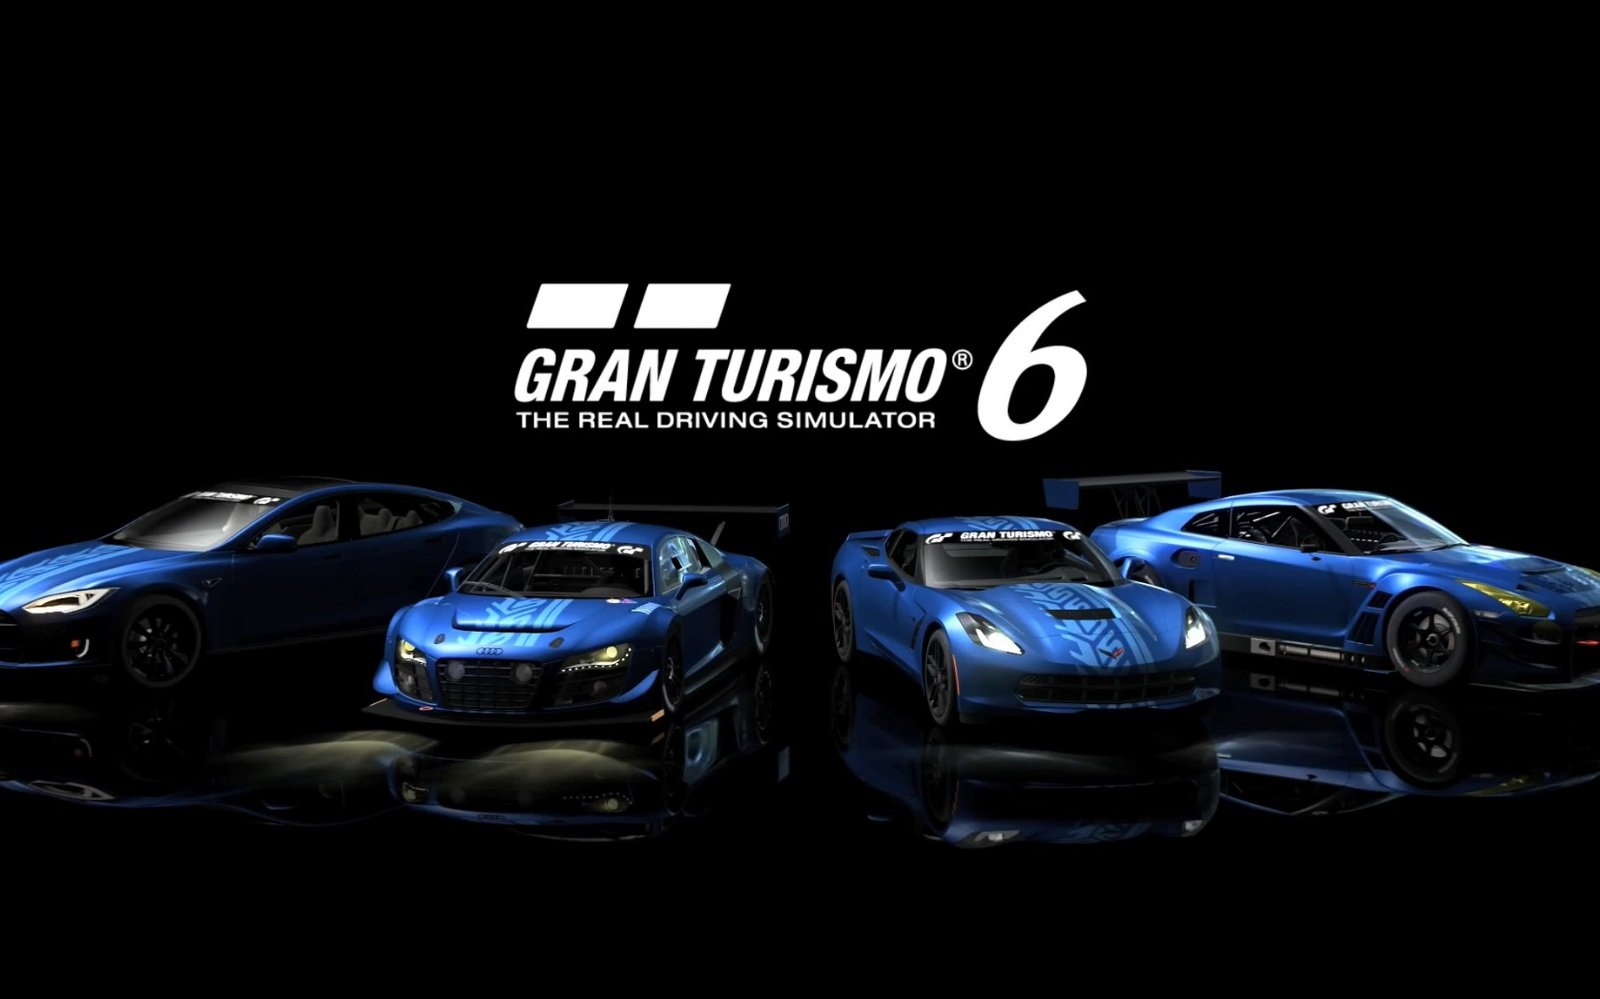 gran turismo 7 production to conclude within two years picture 523824 car news top speed. Black Bedroom Furniture Sets. Home Design Ideas